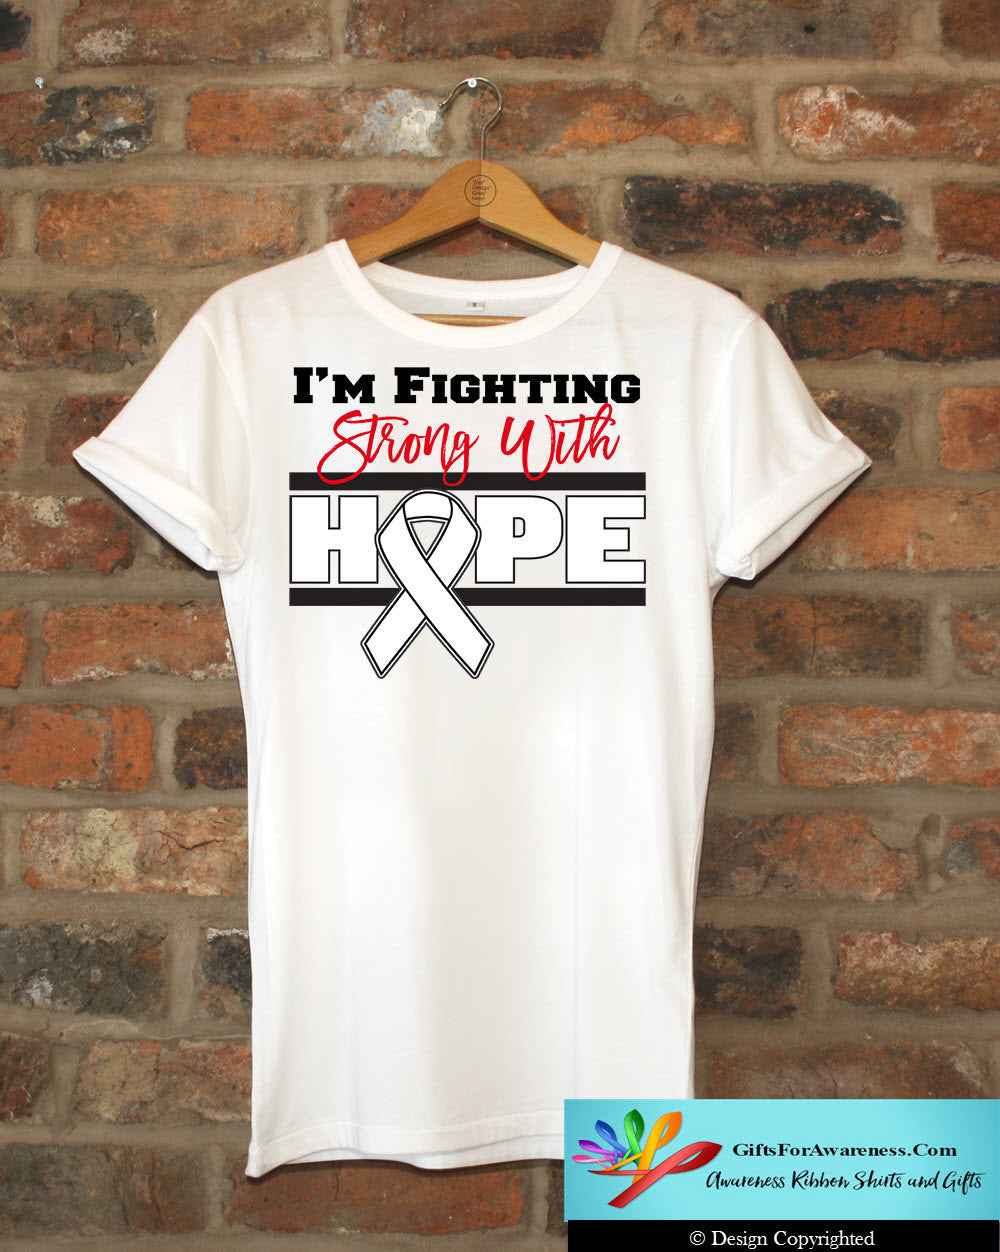 Mesothelioma I'm Fighting Strong With Hope Shirts - GiftsForAwareness